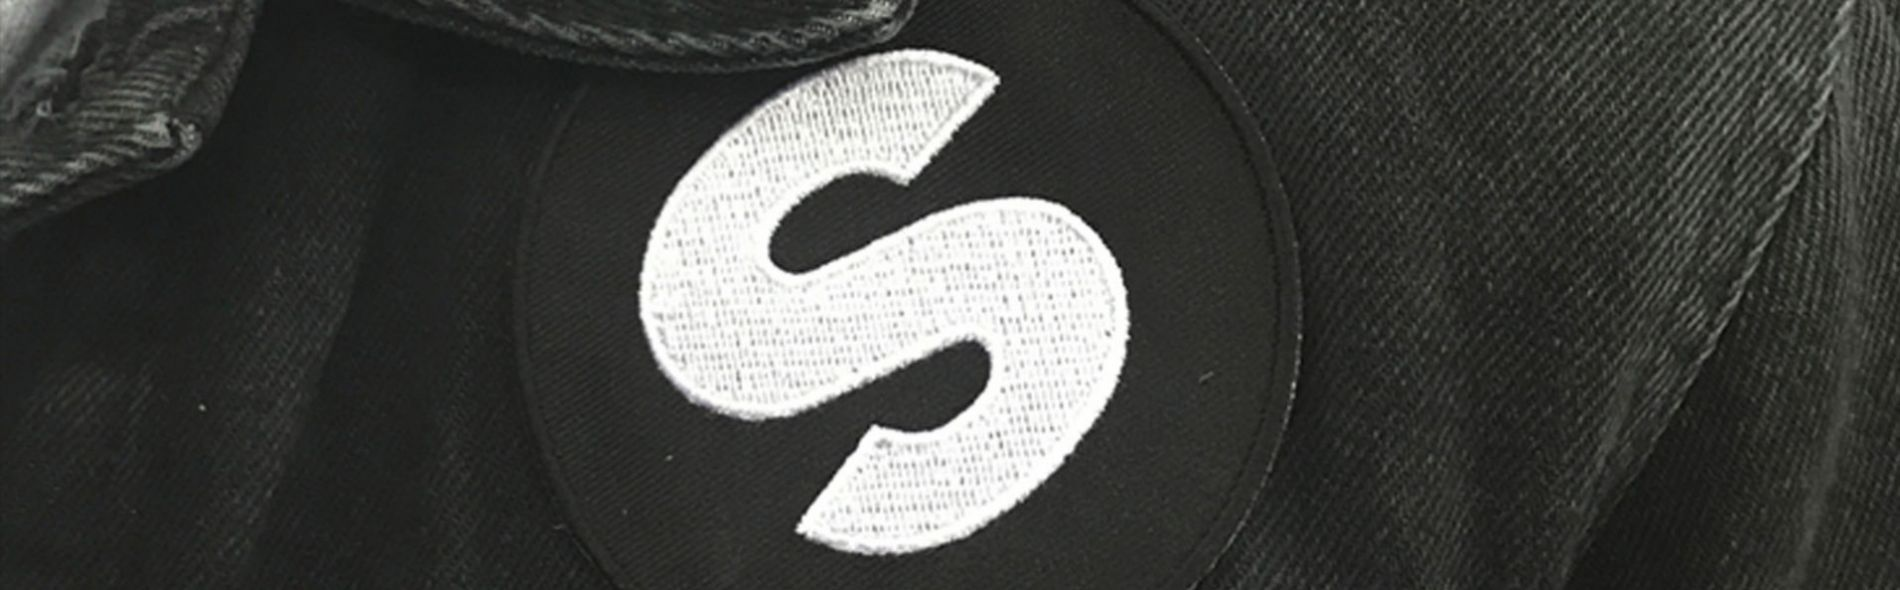 Free Spinnin' Records Patches